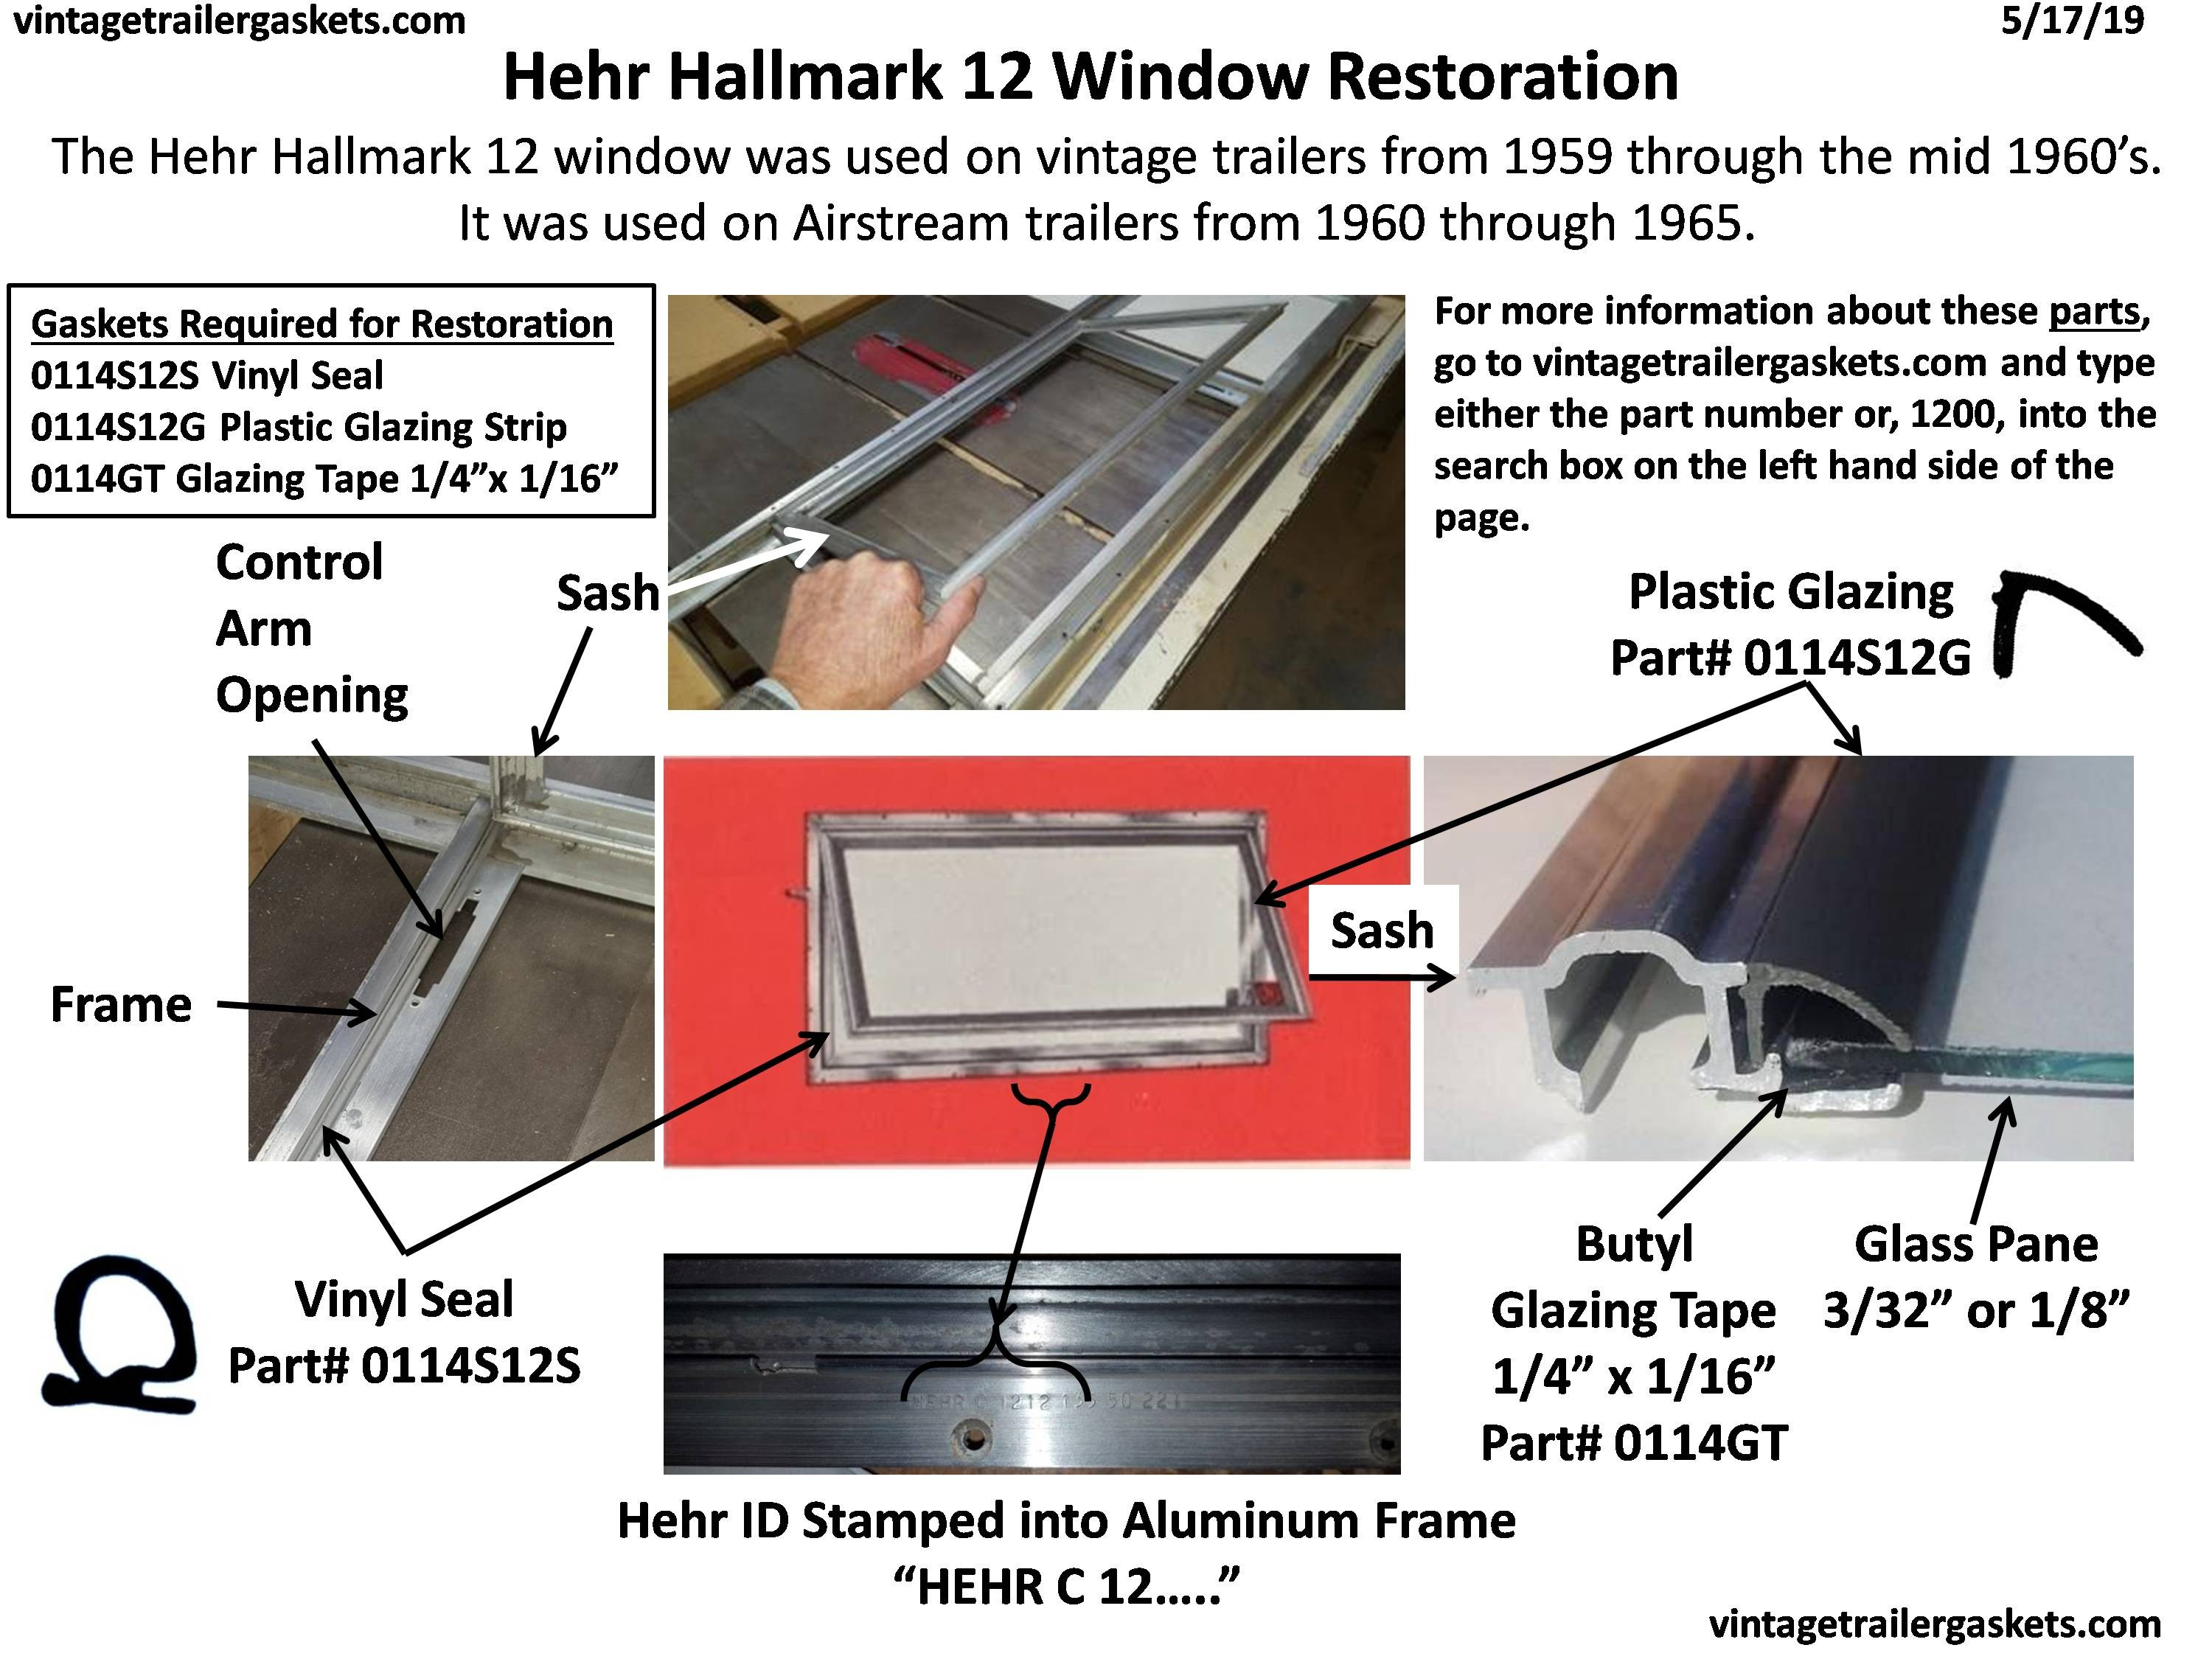 Gaskets, Seals, and Rubber for Vintage Hehr and Woodlin